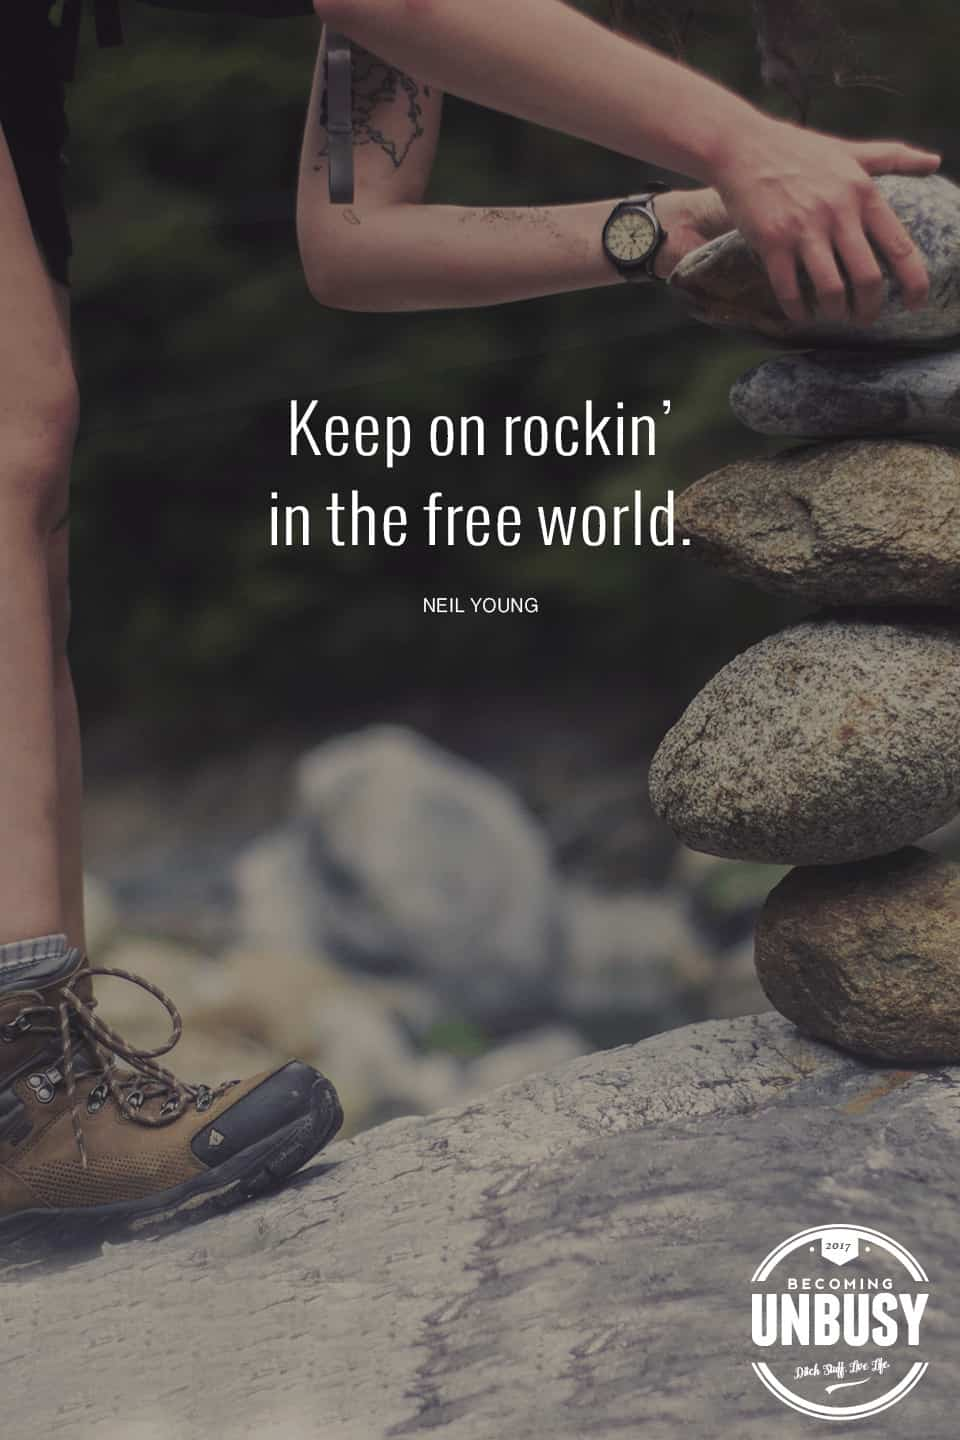 Keep on rocking' in the free world. *Love this Neil Young quote, this life list and this Becoming UnBusy site. Great suggestions.